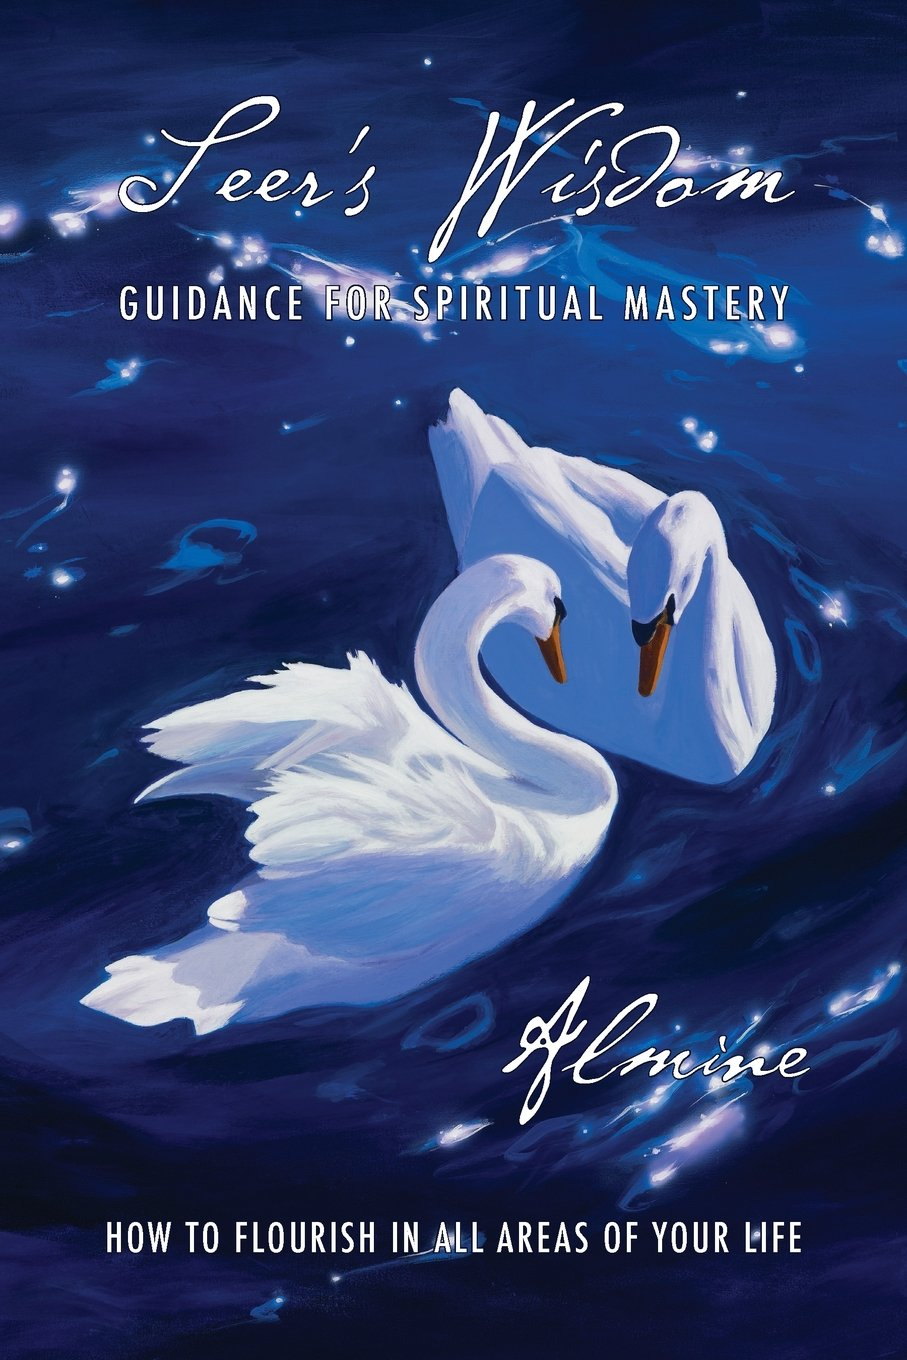 Seer's Wisdom: Guidance for Spiritual Mastery